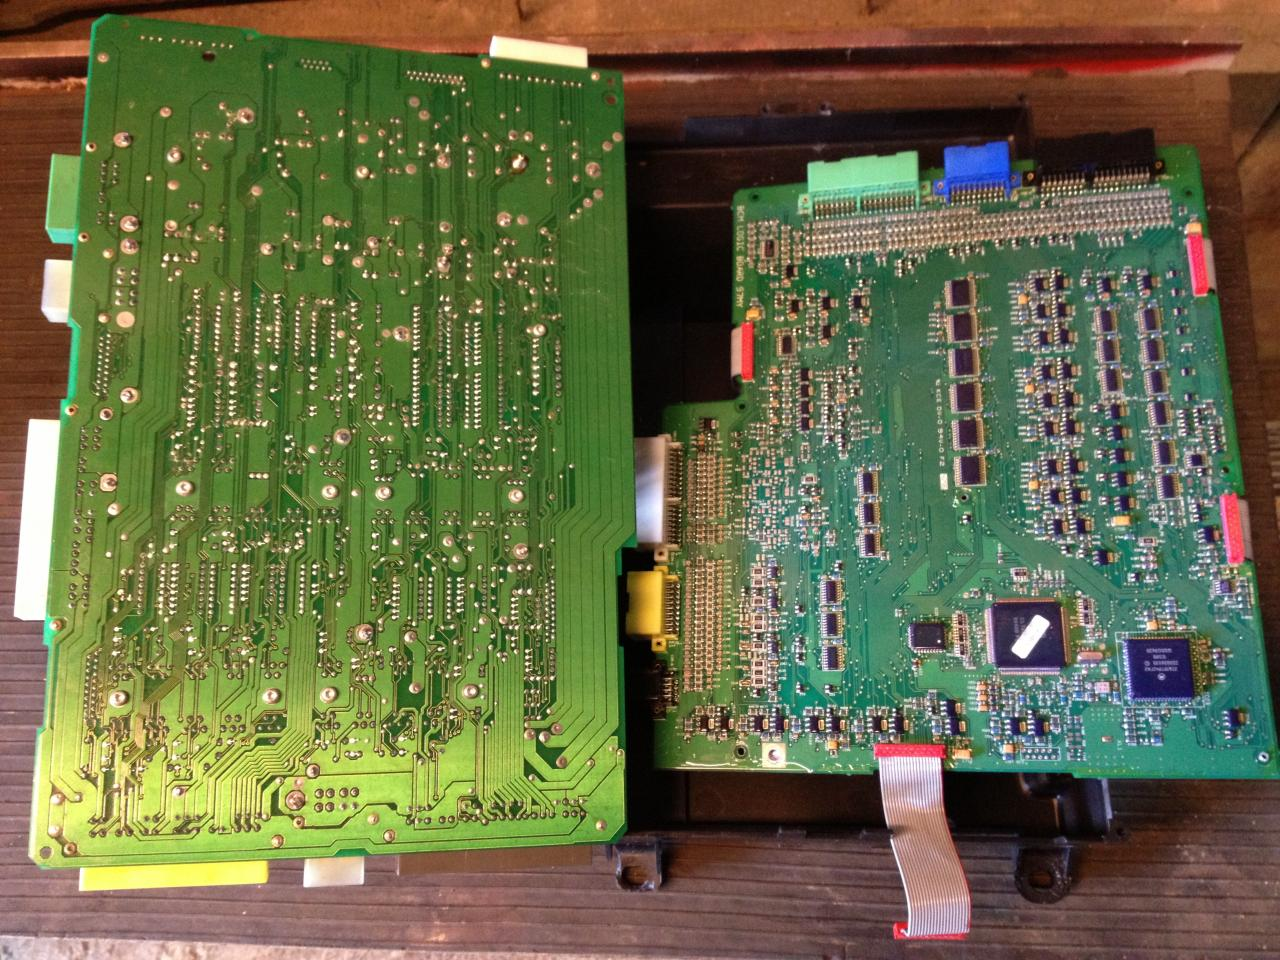 P38 Range Rover BeCM Circuit Boards for Repair